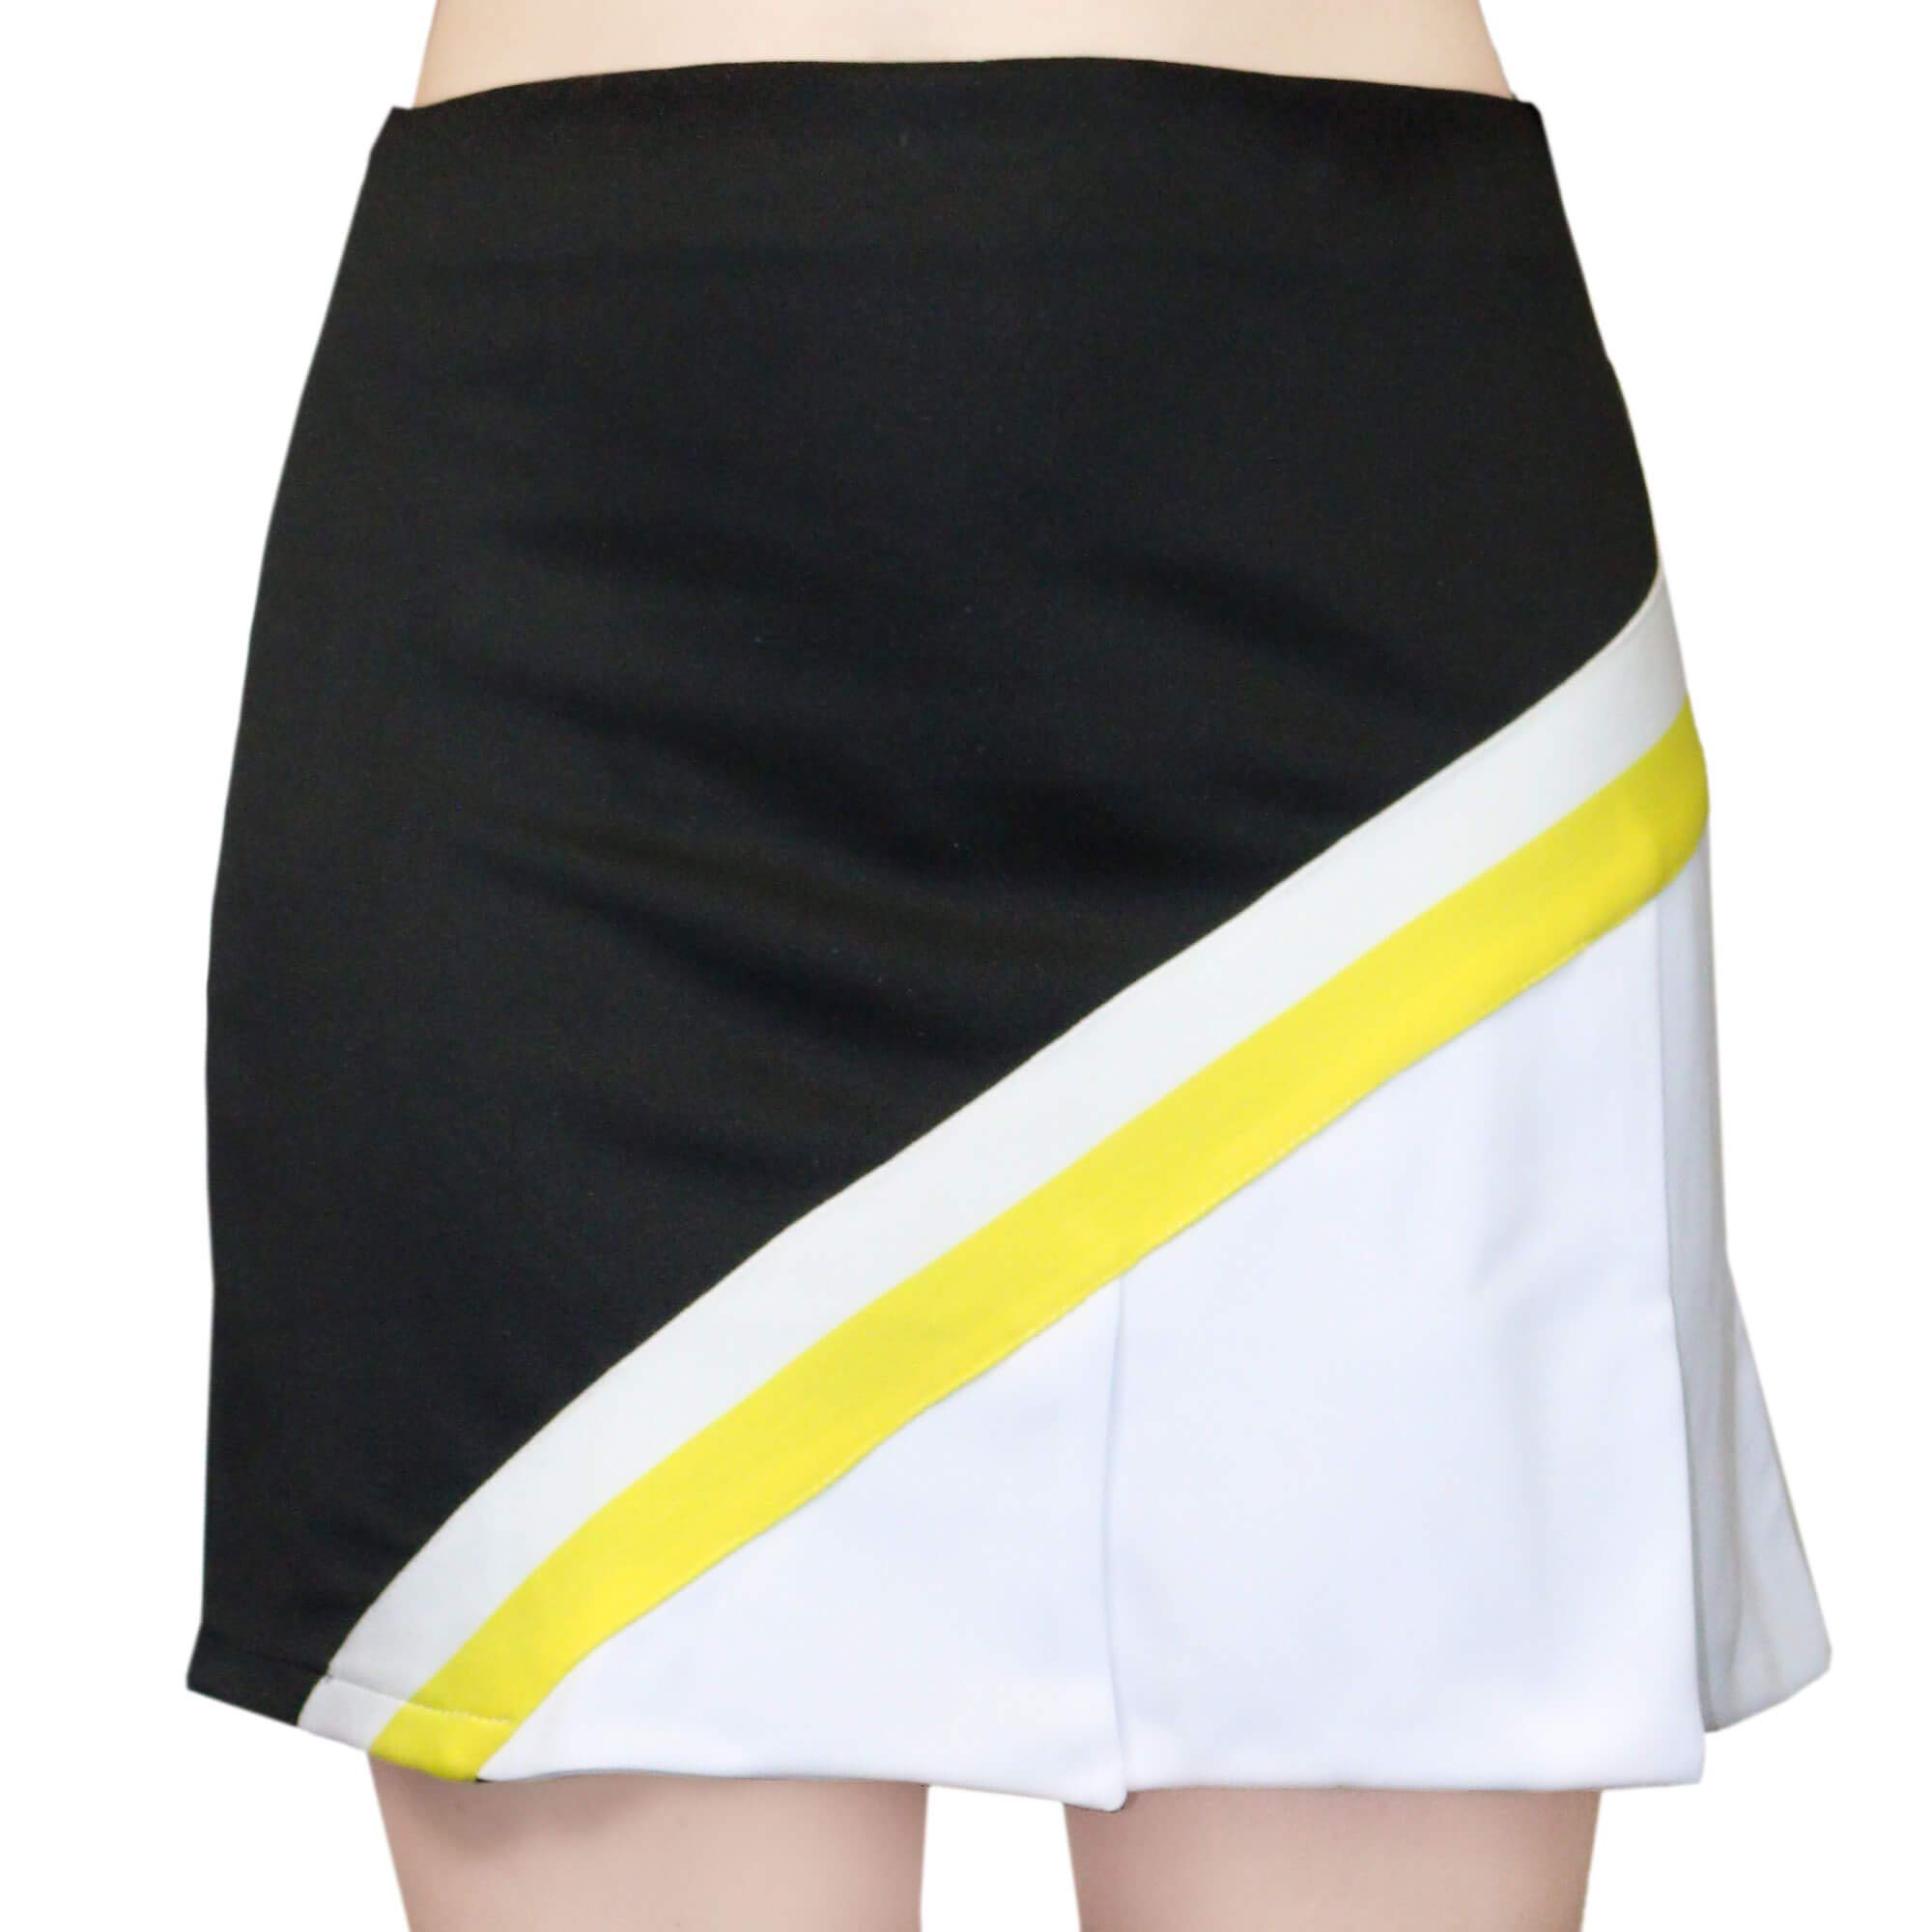 Danzcue Adult Cheerleading A-Line Pleat Skirt, Black-White, Small by Danzcue